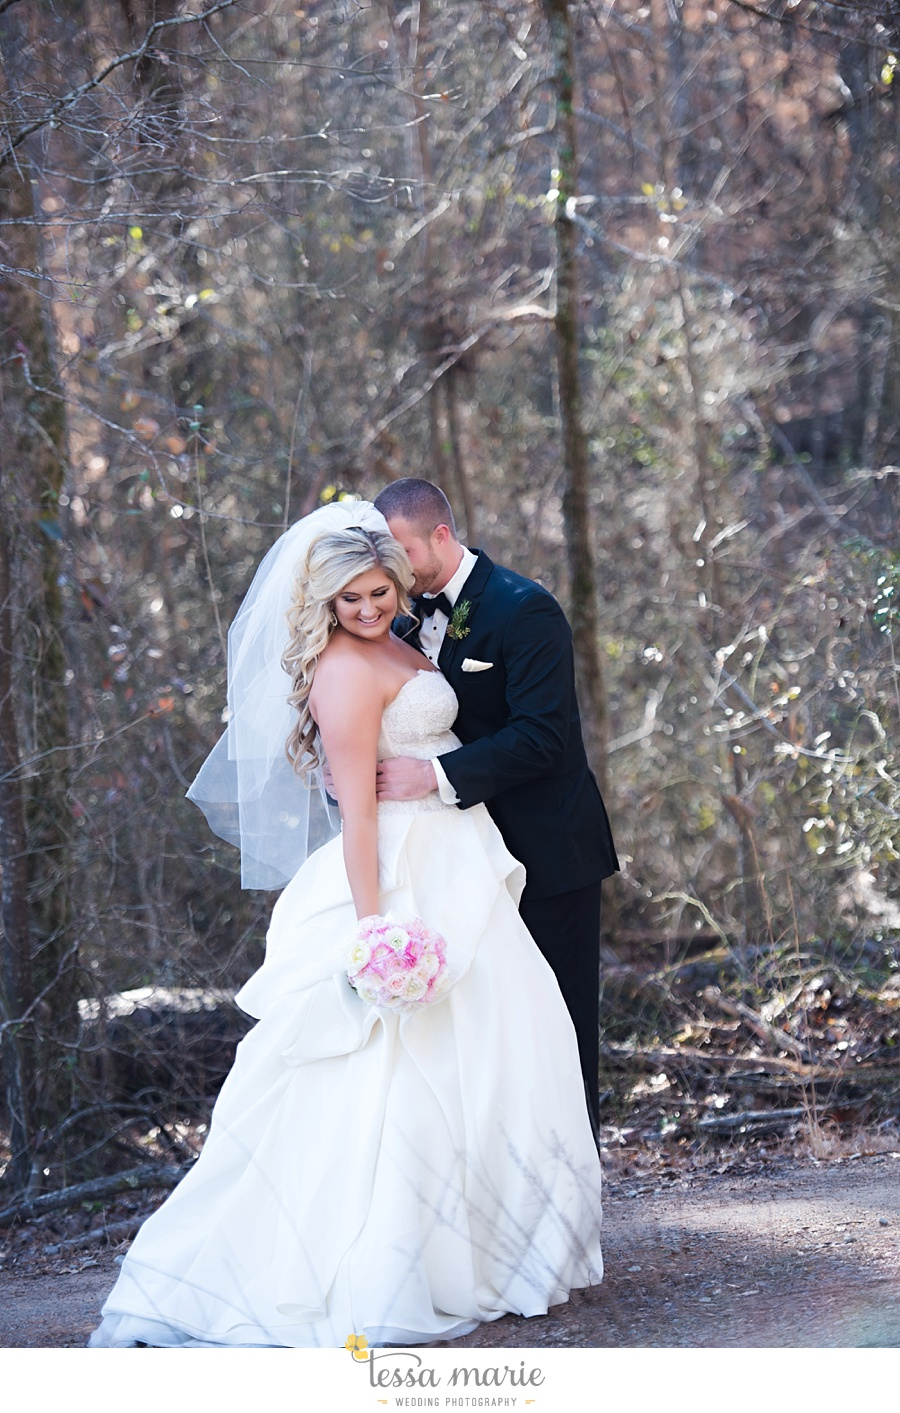 foxhall_outdoor_wedding_stables_pictures_tessa_marie_weddings_kayla_buck_bloomin_bouquets_joan_pillow_atlanta_wedding_pictures_0055